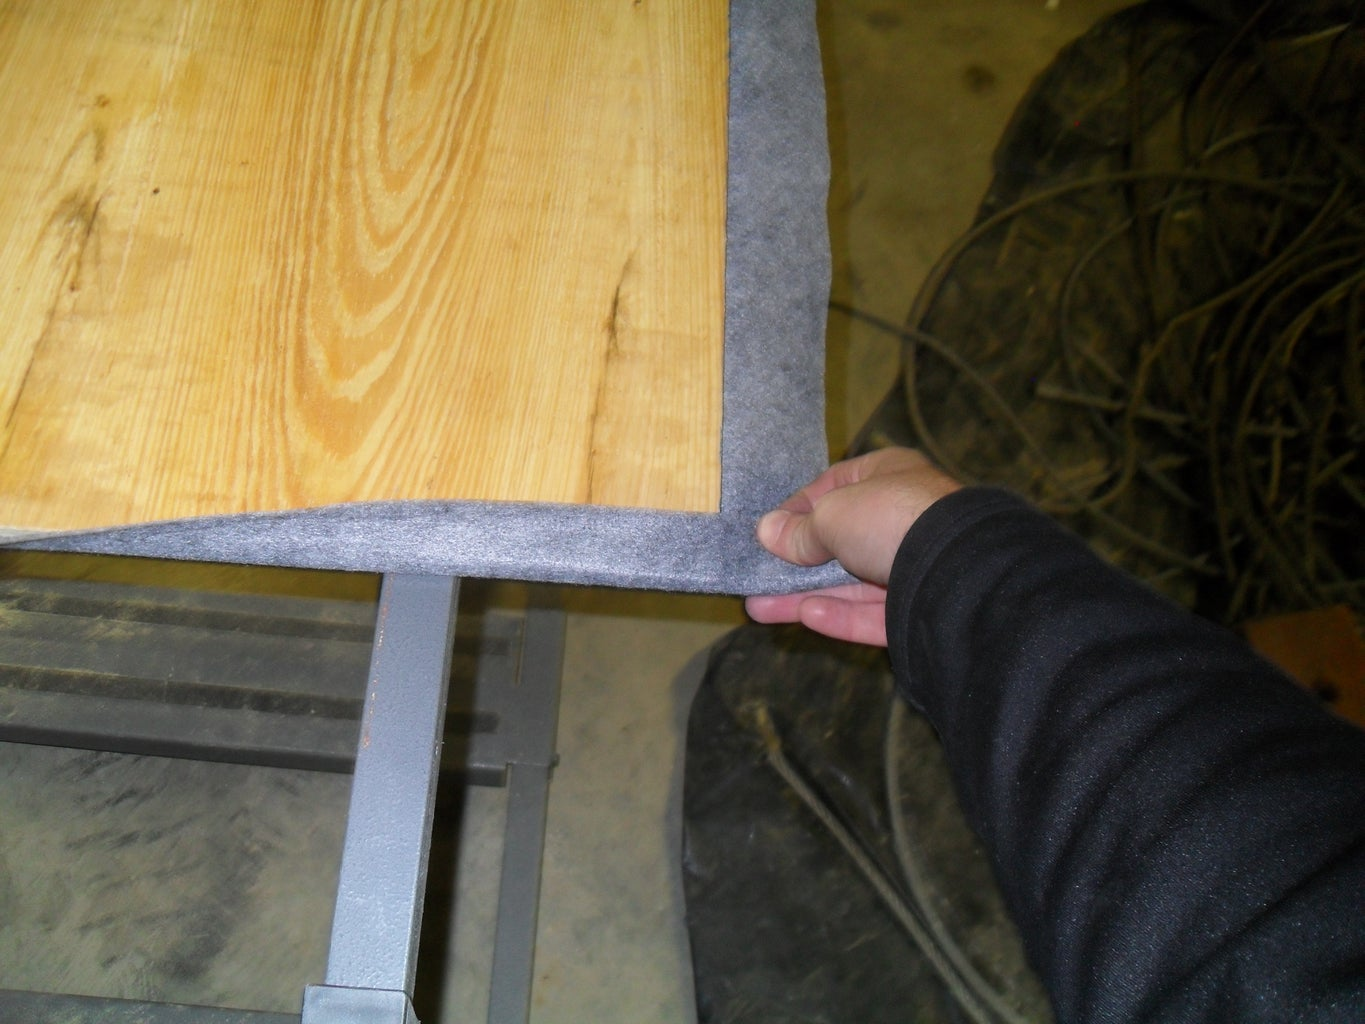 Gluing Down the Corners of the Felt